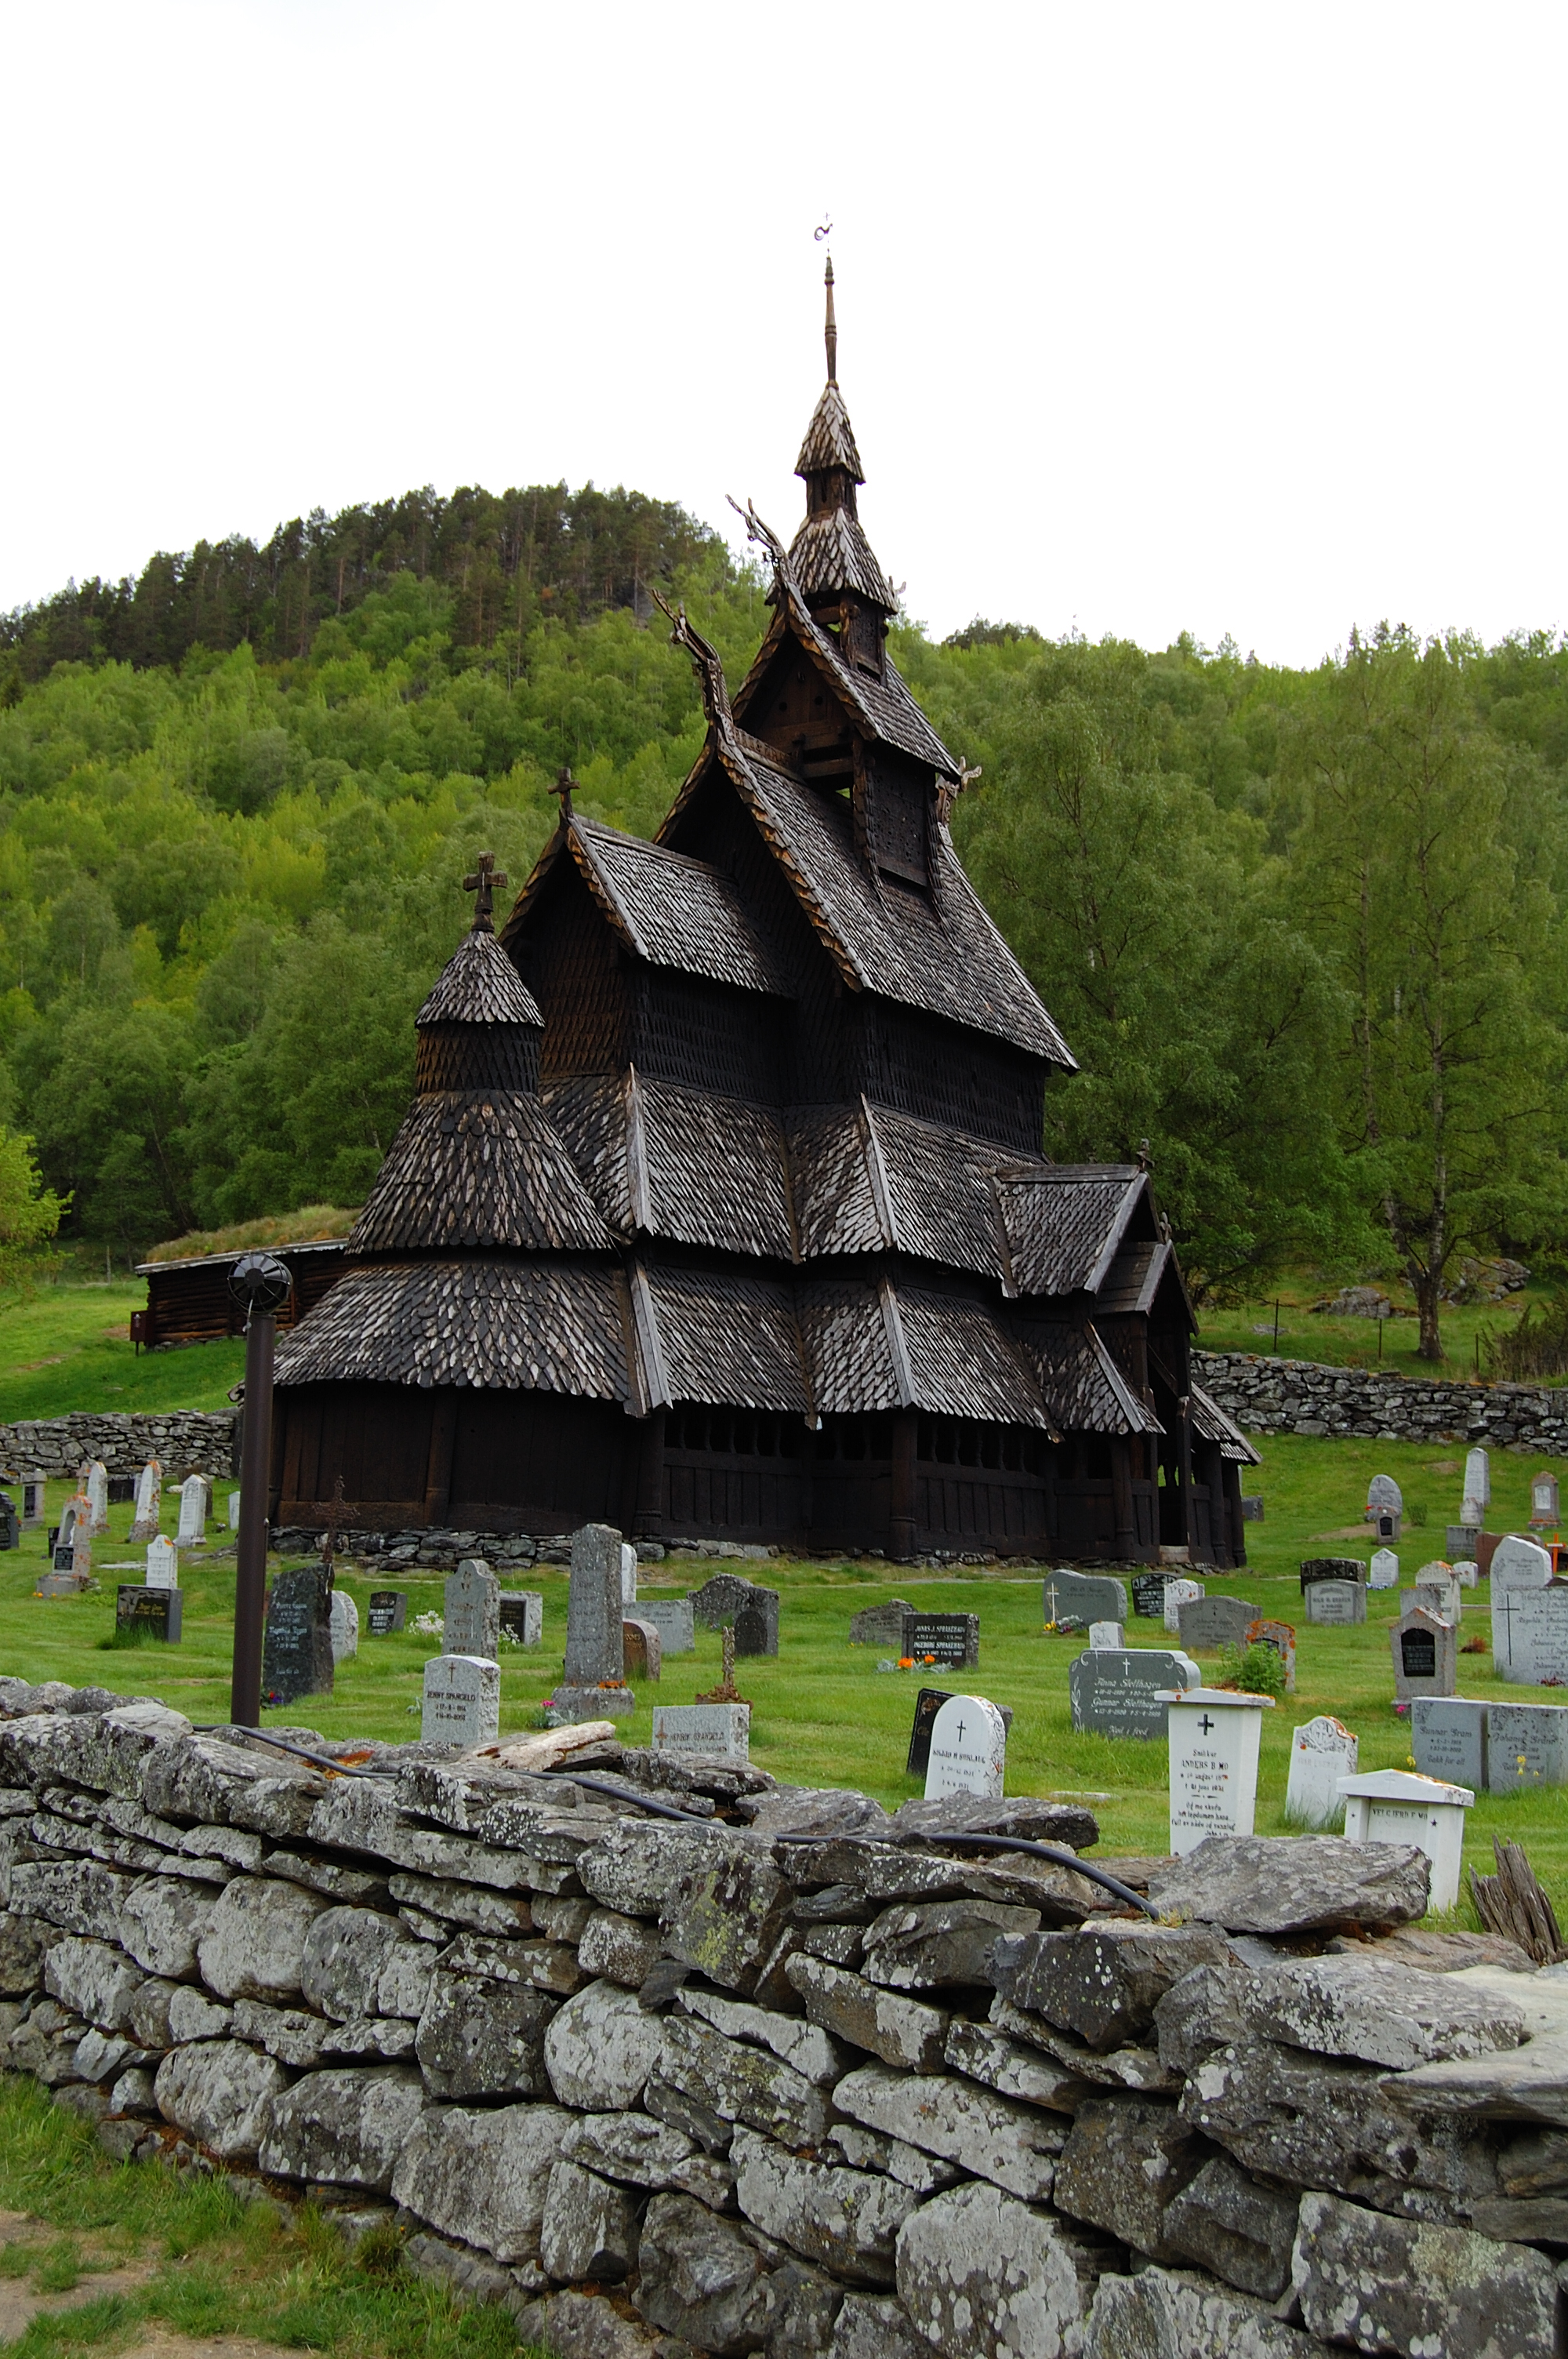 borgund-stave-church-norway-6